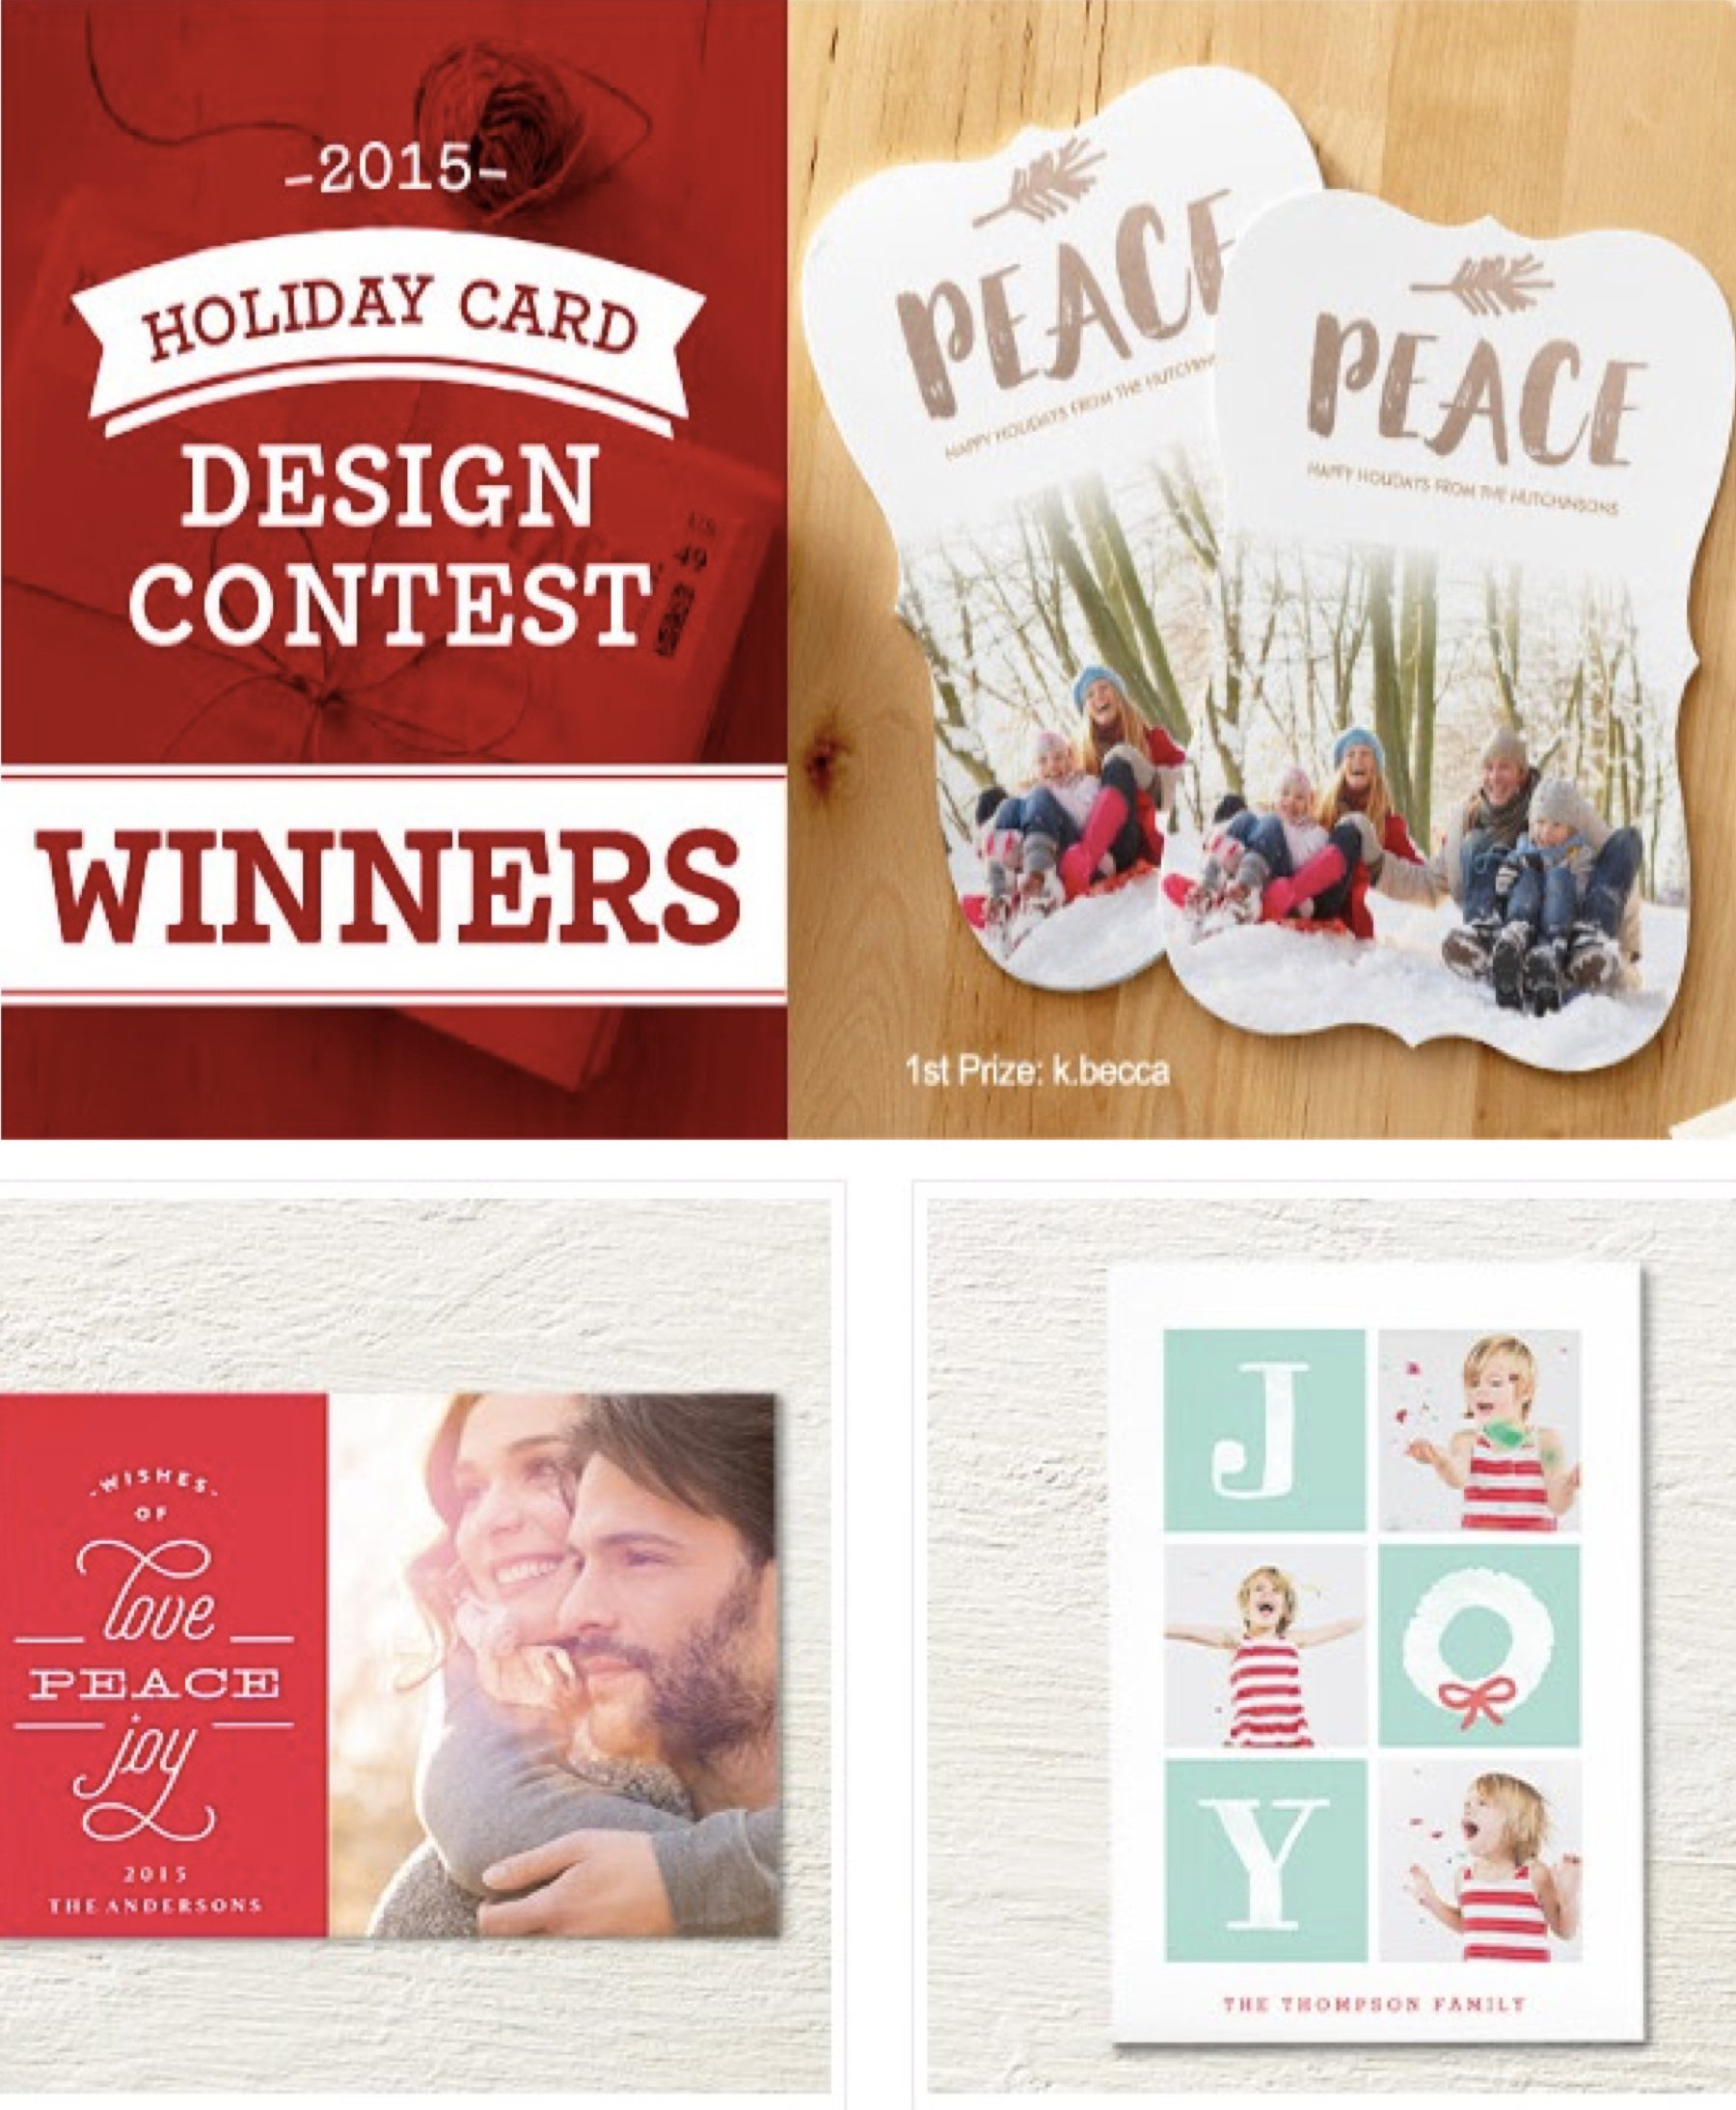 2015 Holiday Card Winning Designs | Christmas Cards | PartyIdeaPros.com